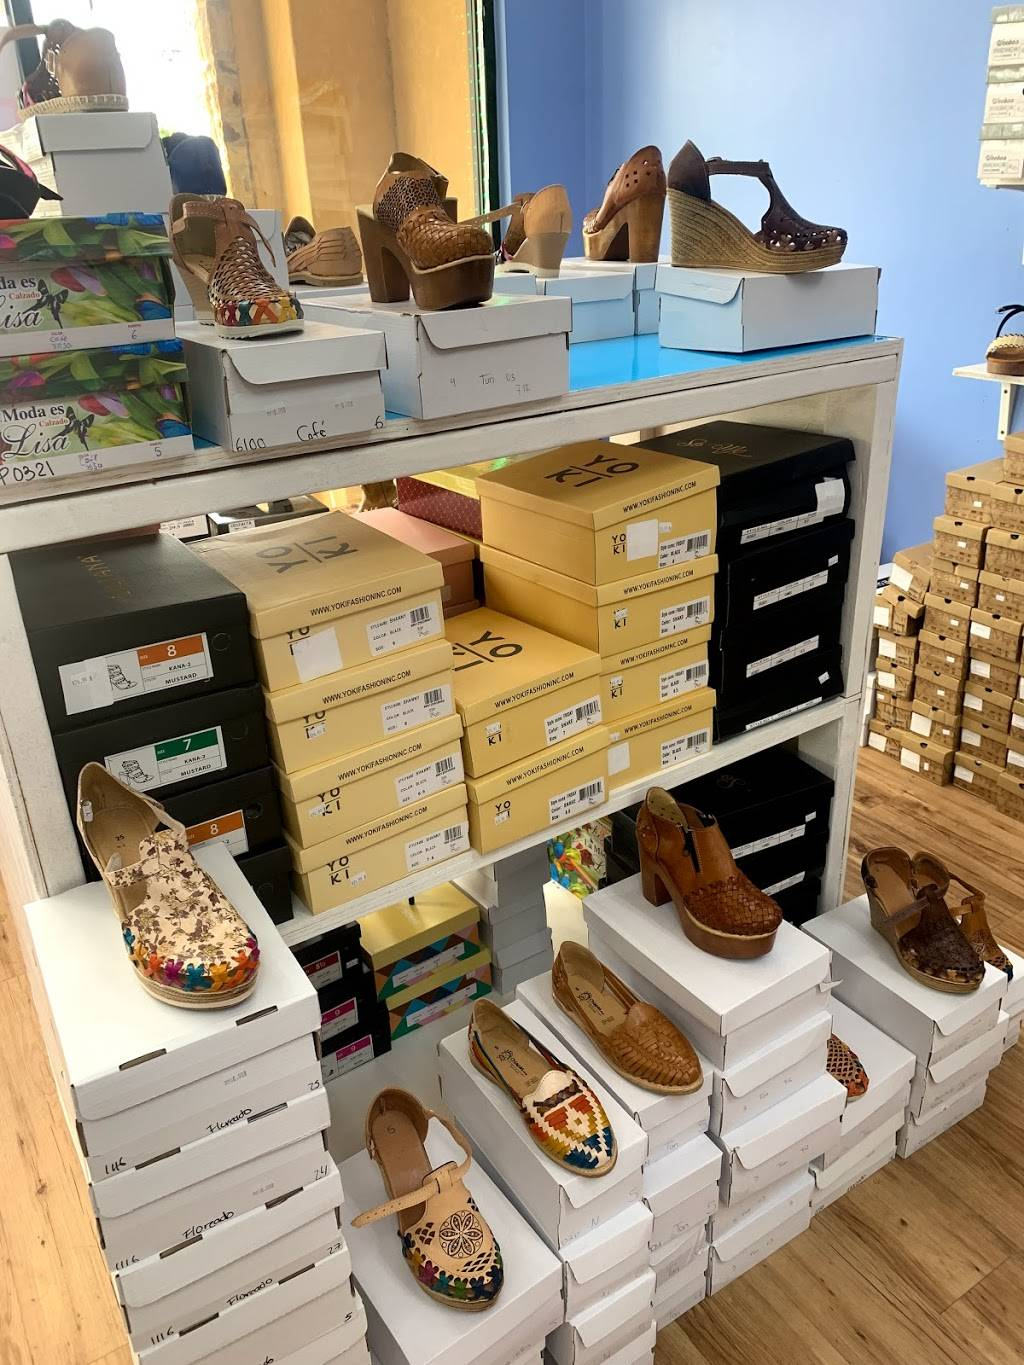 Boots & Shoes 4 You - shoe store    Photo 1 of 9   Address: 4207 W Illinois Ave #100, Dallas, TX 75211, USA   Phone: (469) 941-4043